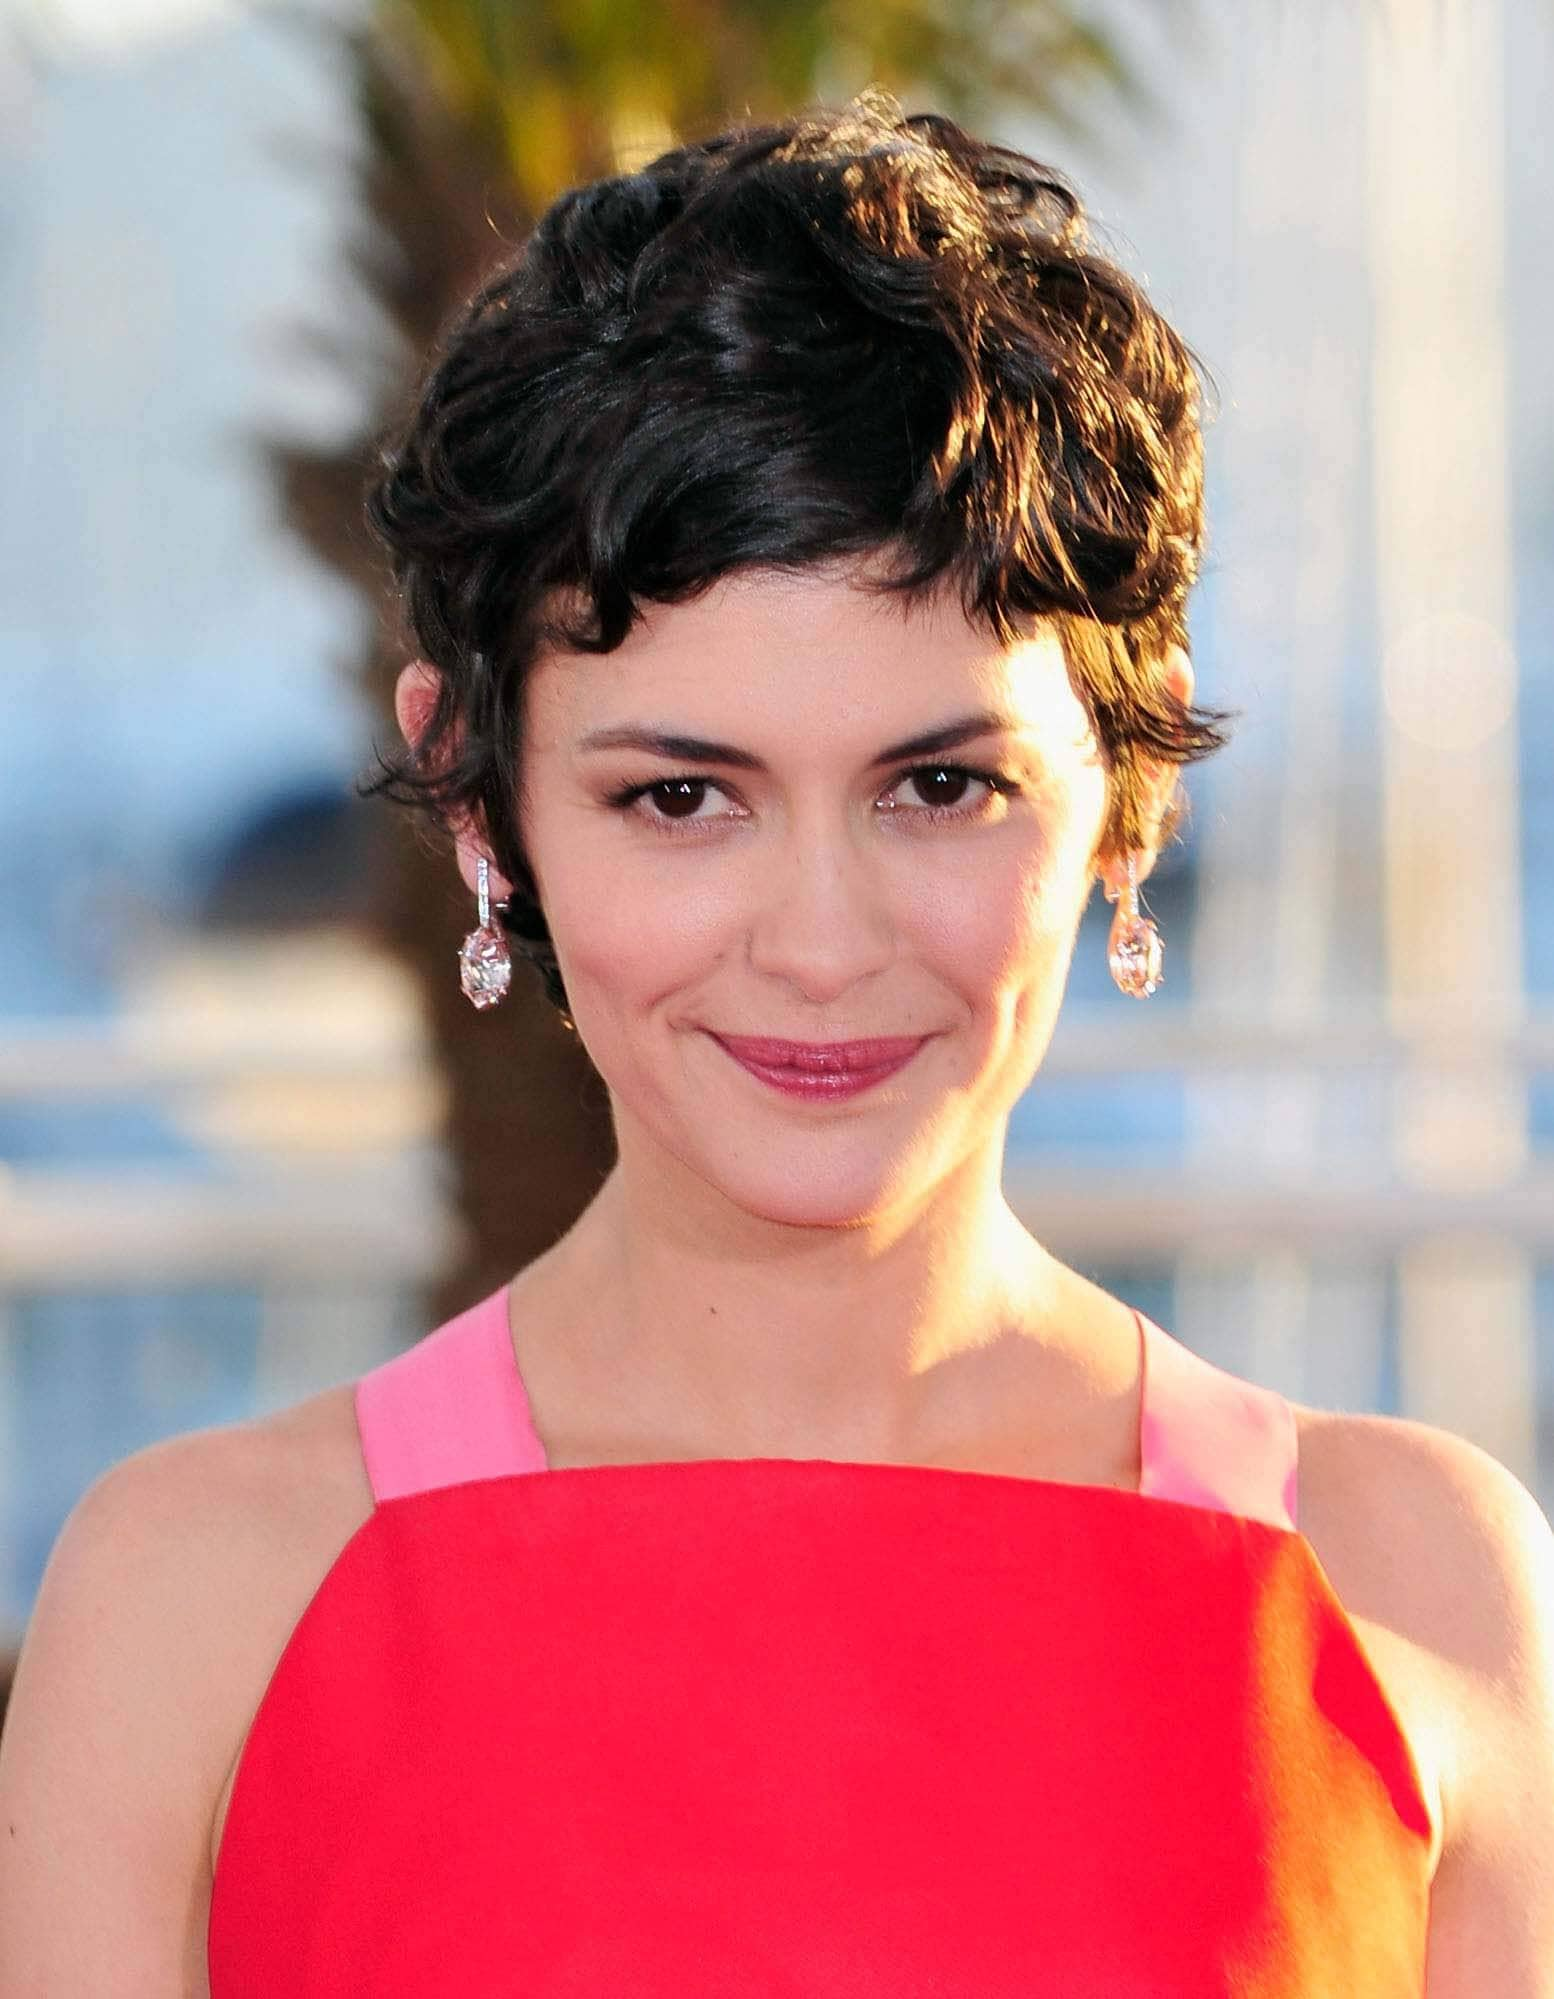 Classy Short Hairstyles From 5 Iconic Women